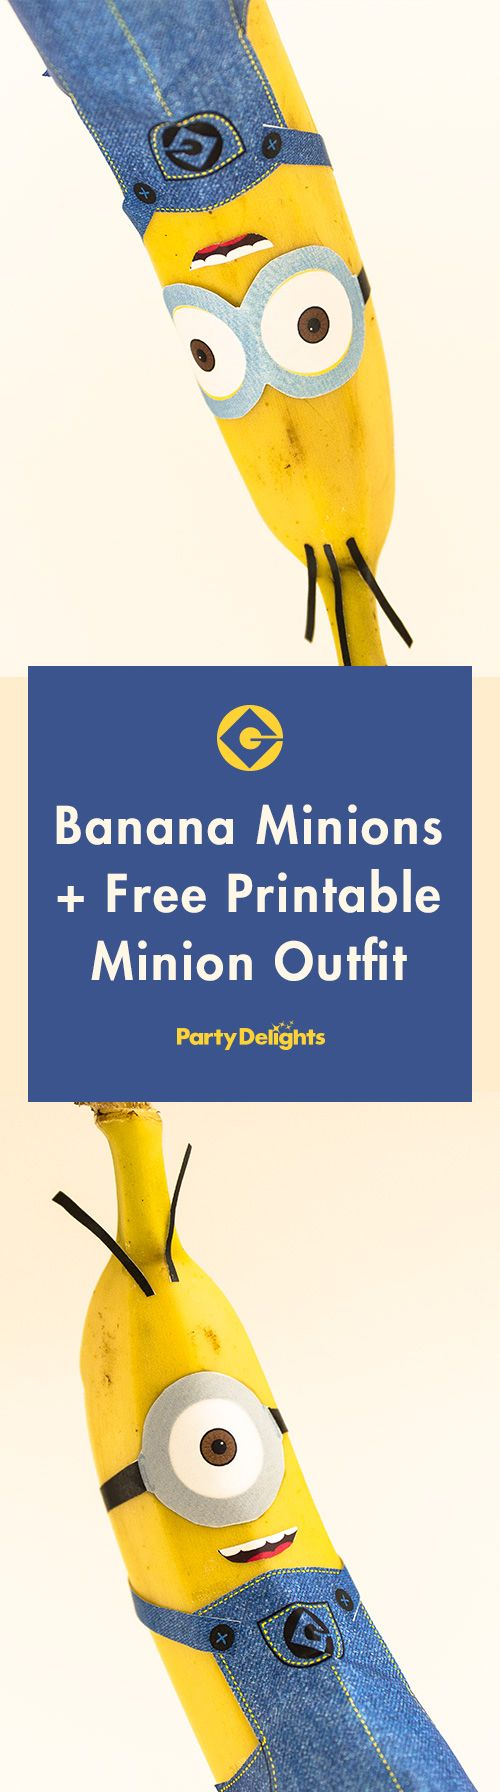 Download our free printable minion outfits to make these adorable banana…